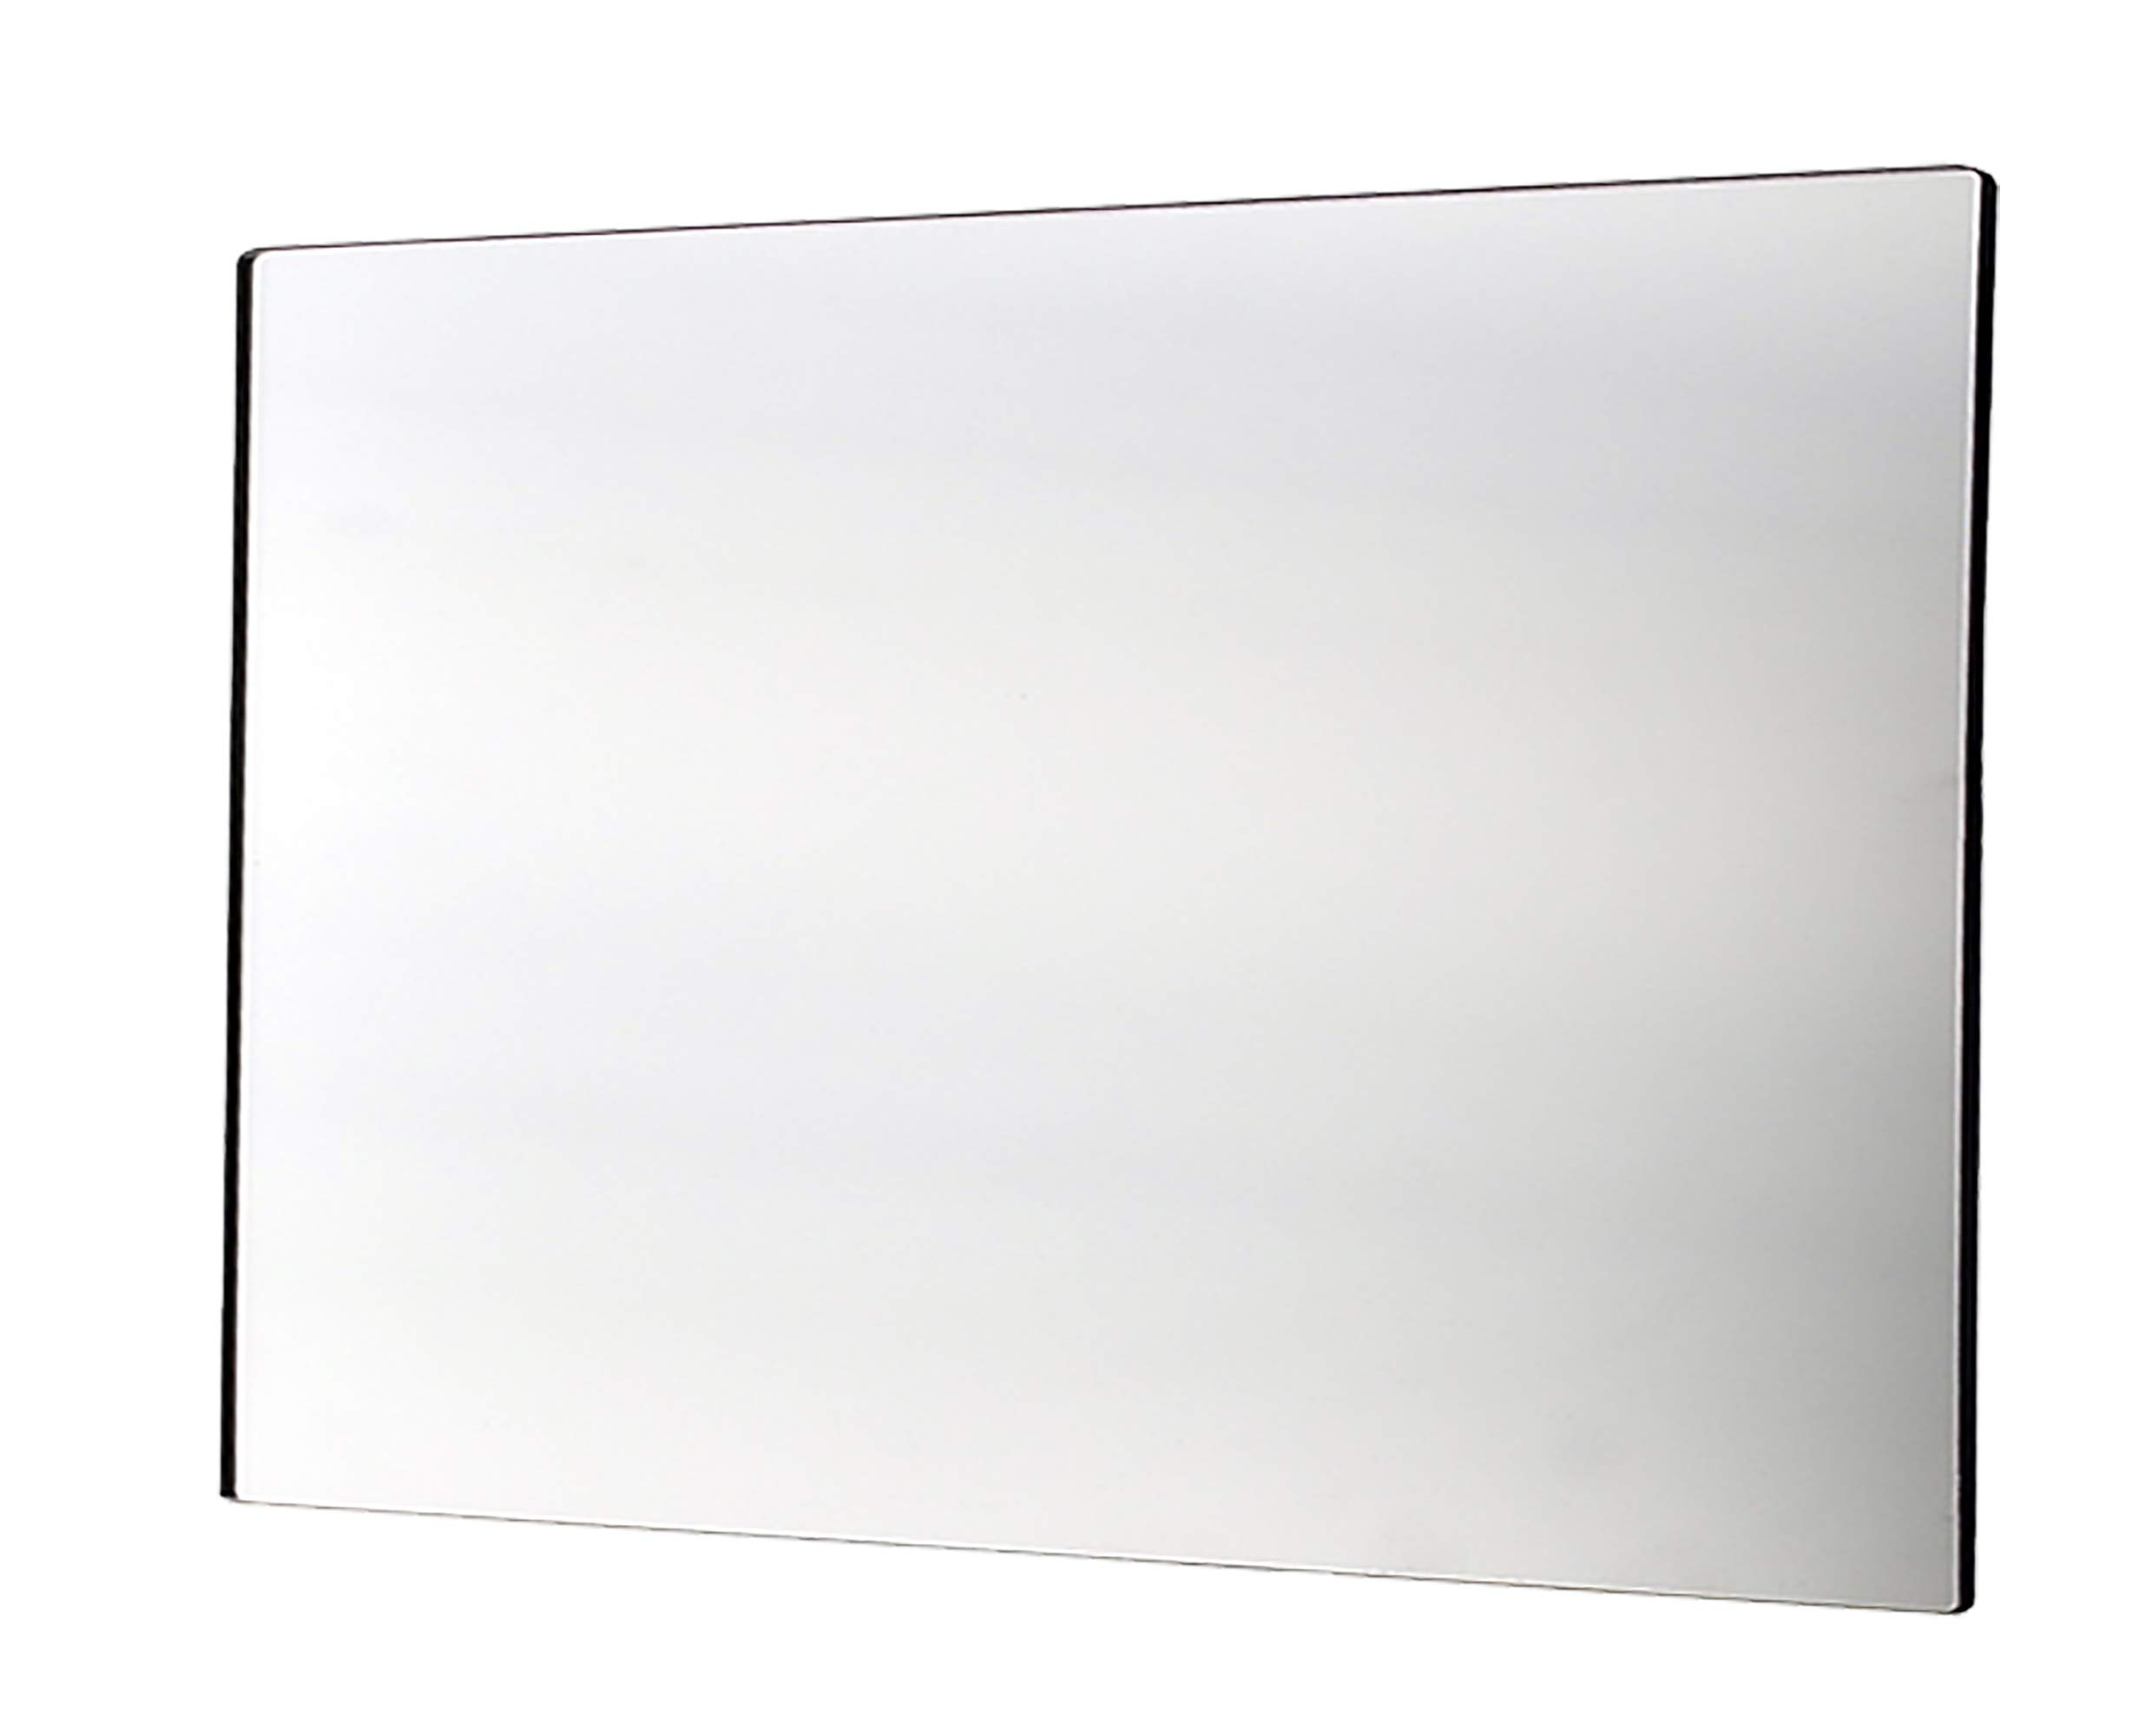 """Marketing Holders Magnetic Acrylic Mirror Lockers Bathroom Camper RV Boat Office Small Mirrors Safer Than Glass 8"""" x 10"""" Can Also use Dry Erase Markers on These"""